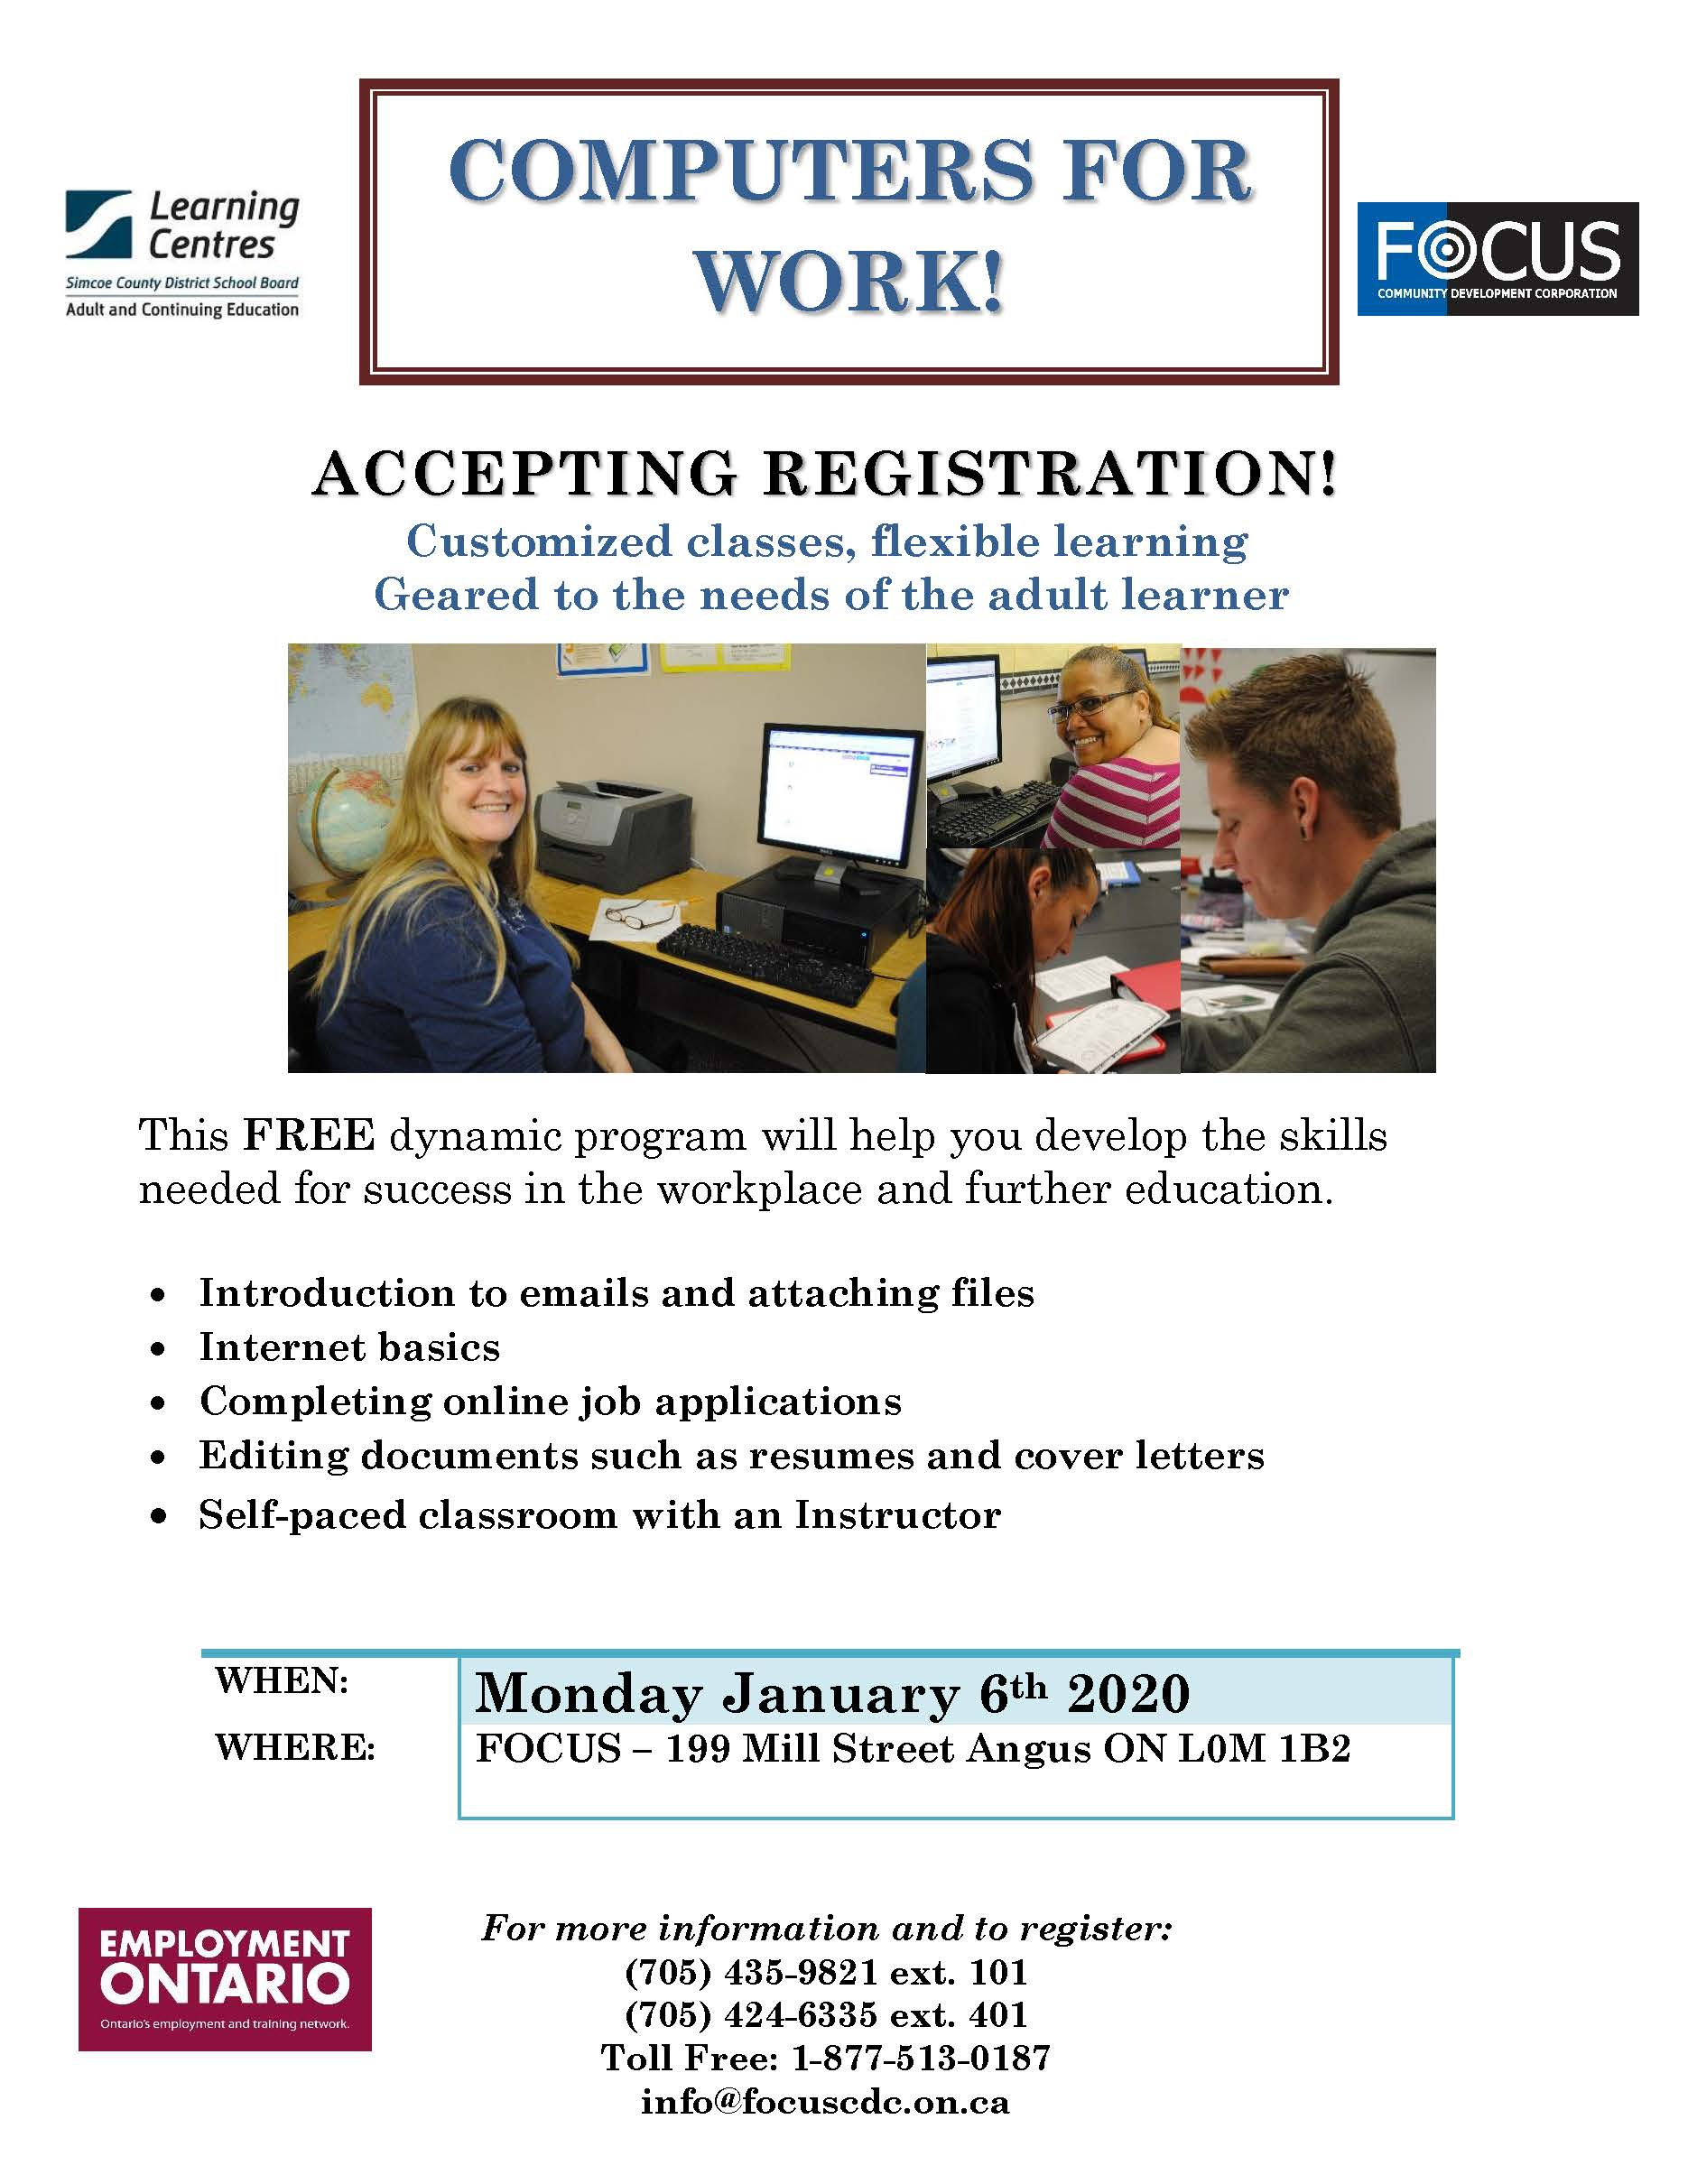 Computers for Work Poster Angus 2019